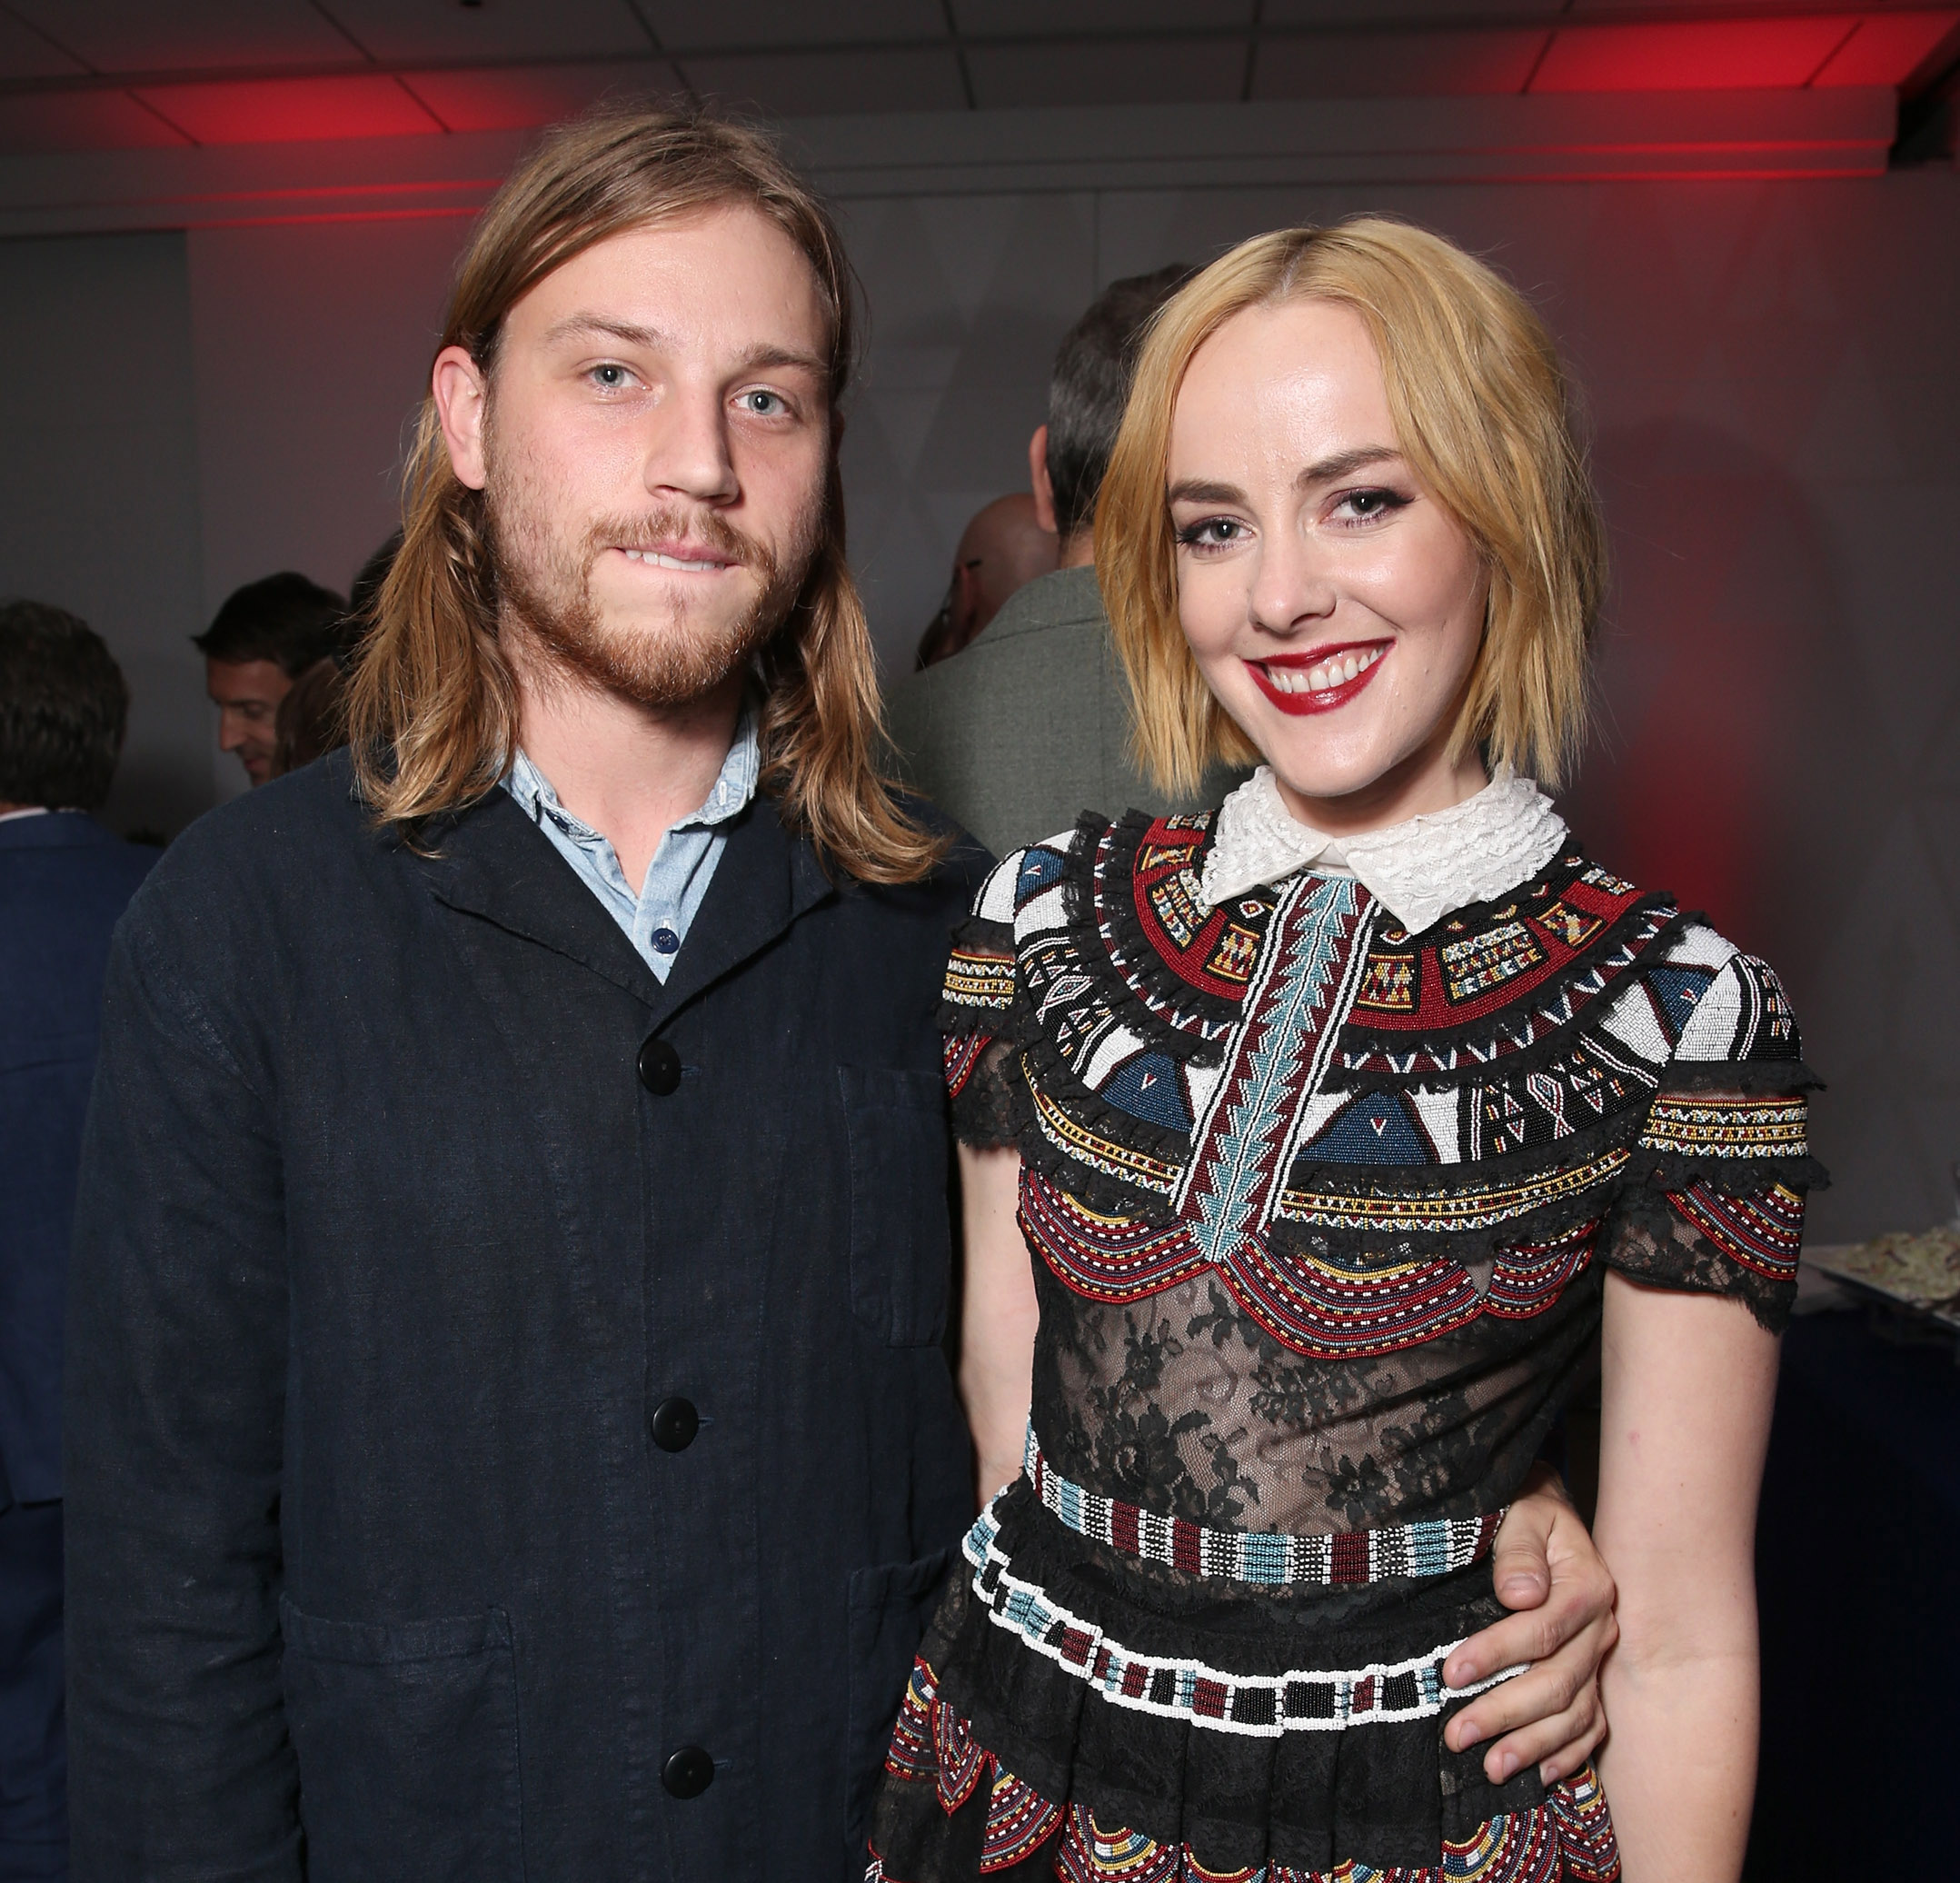 Hunger Games actress Jena Malone is pregnant with first child with Ethan DeLorenzo